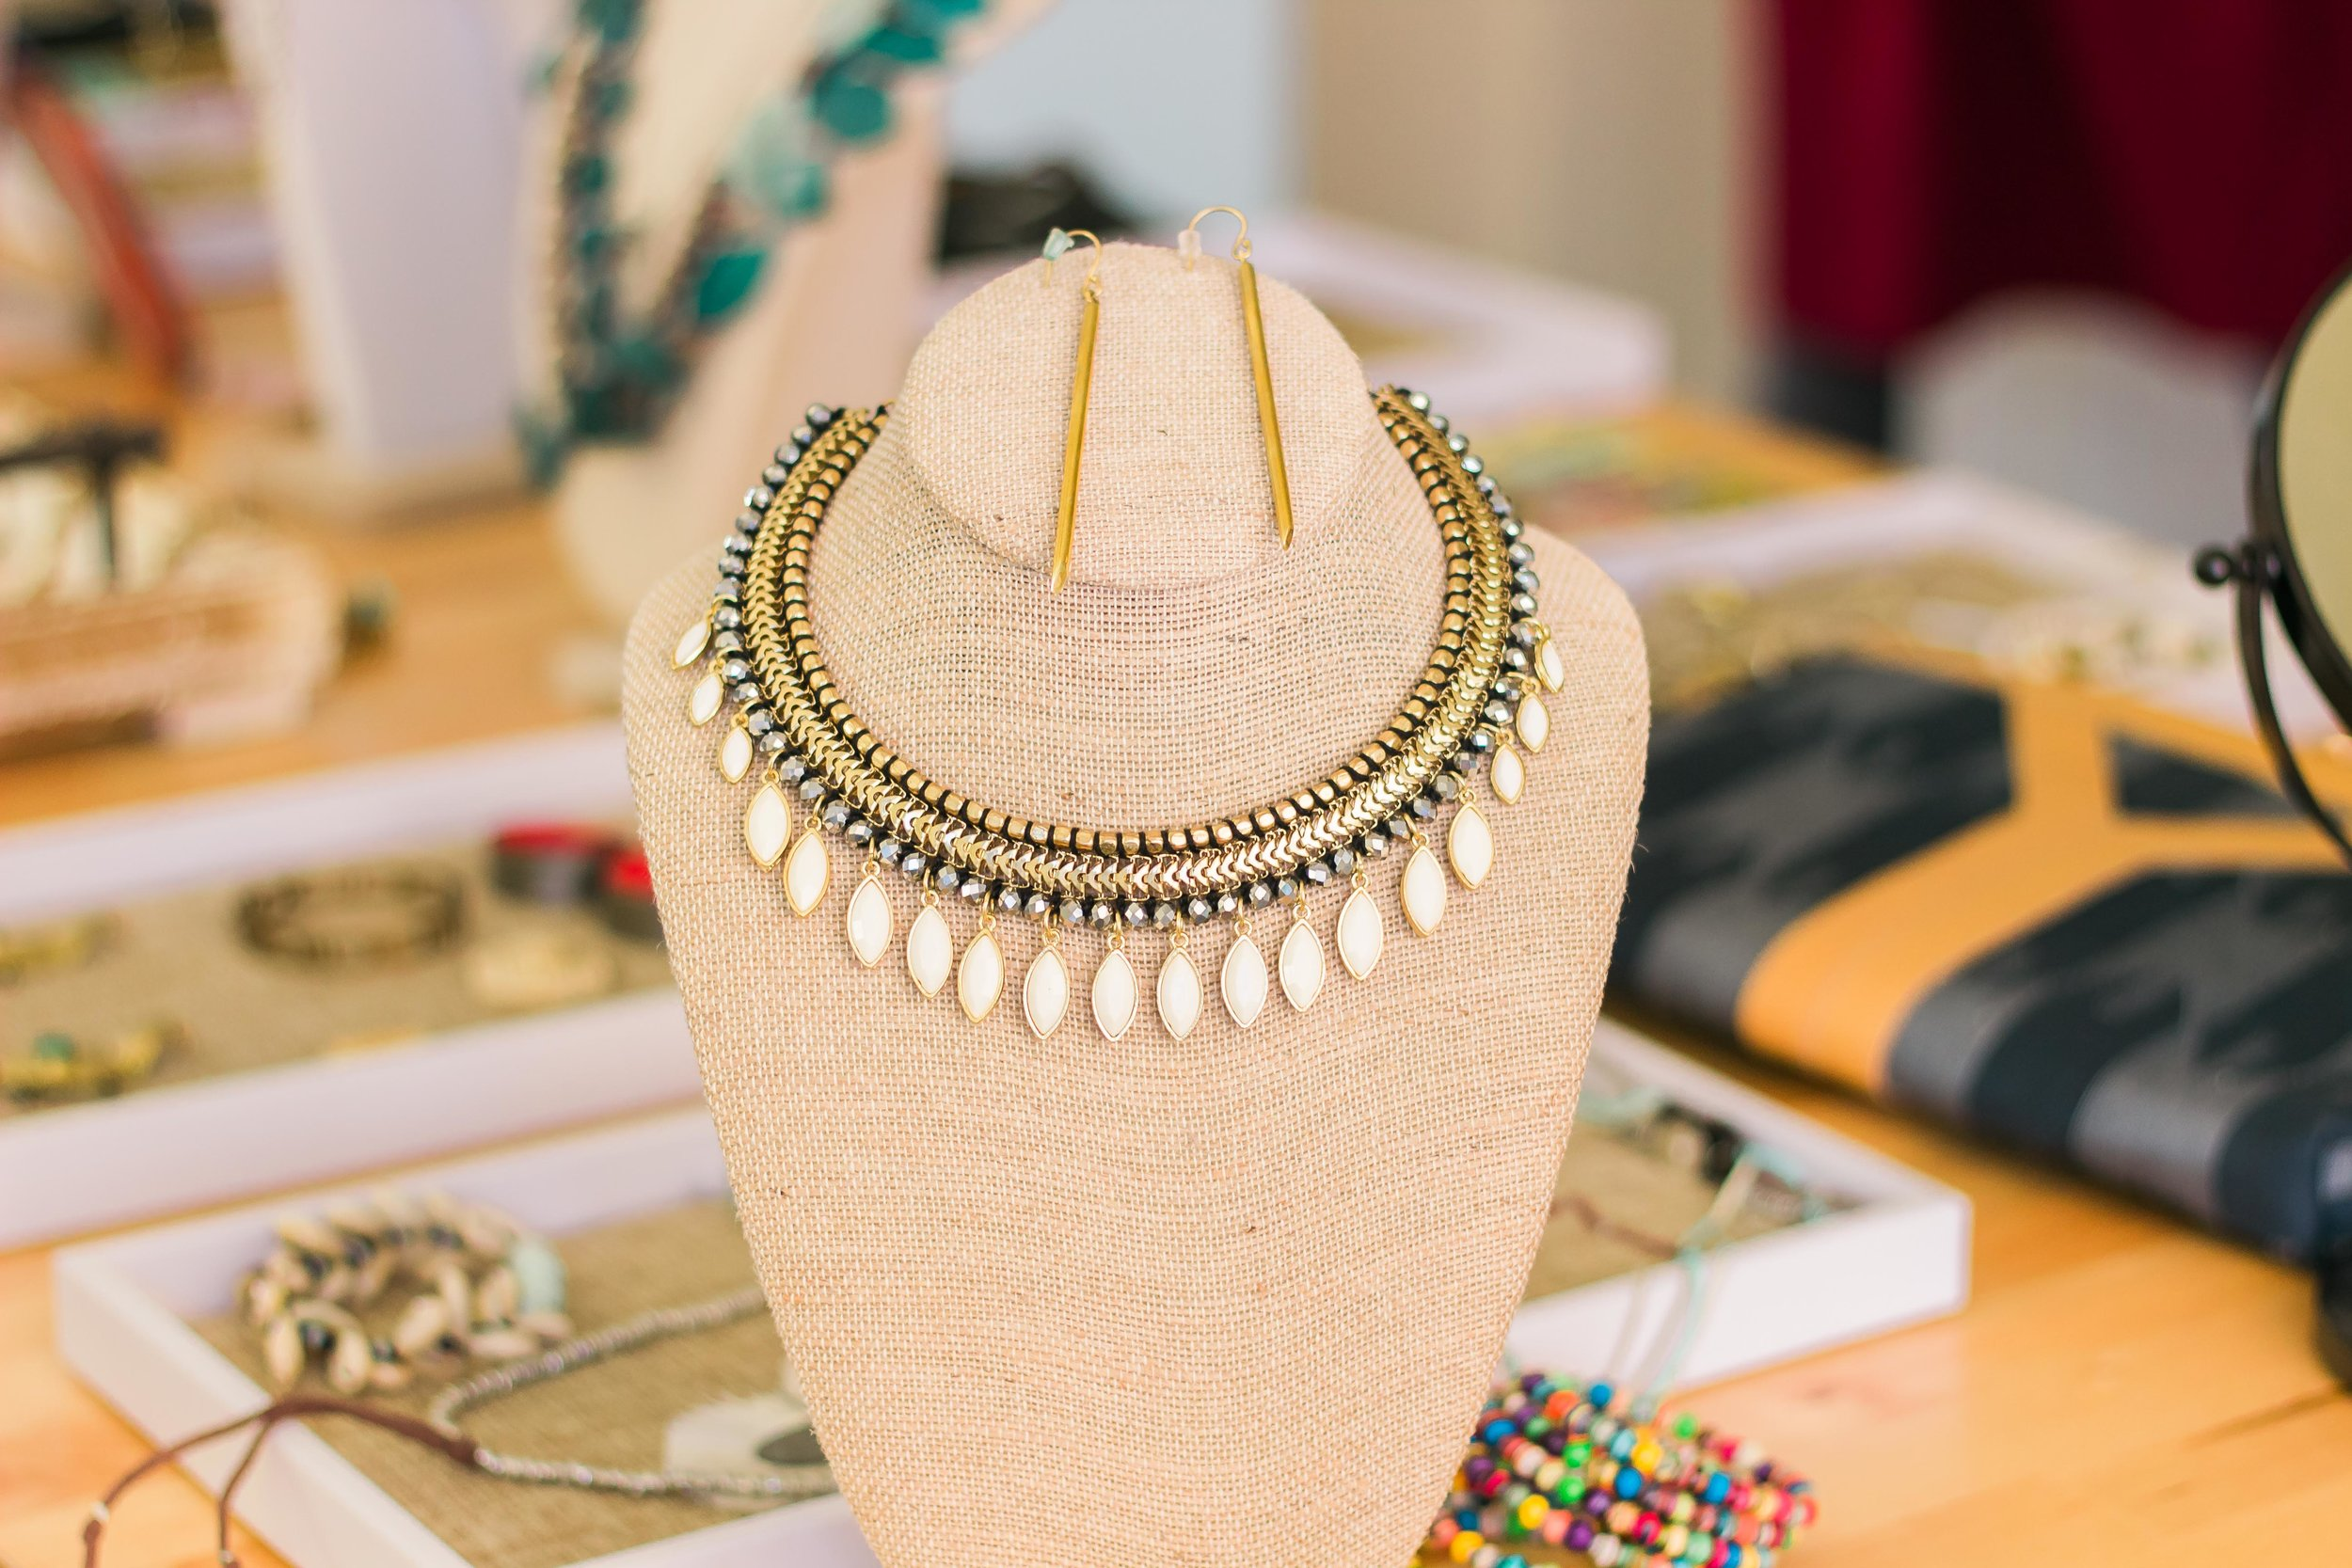 ethically made necklace